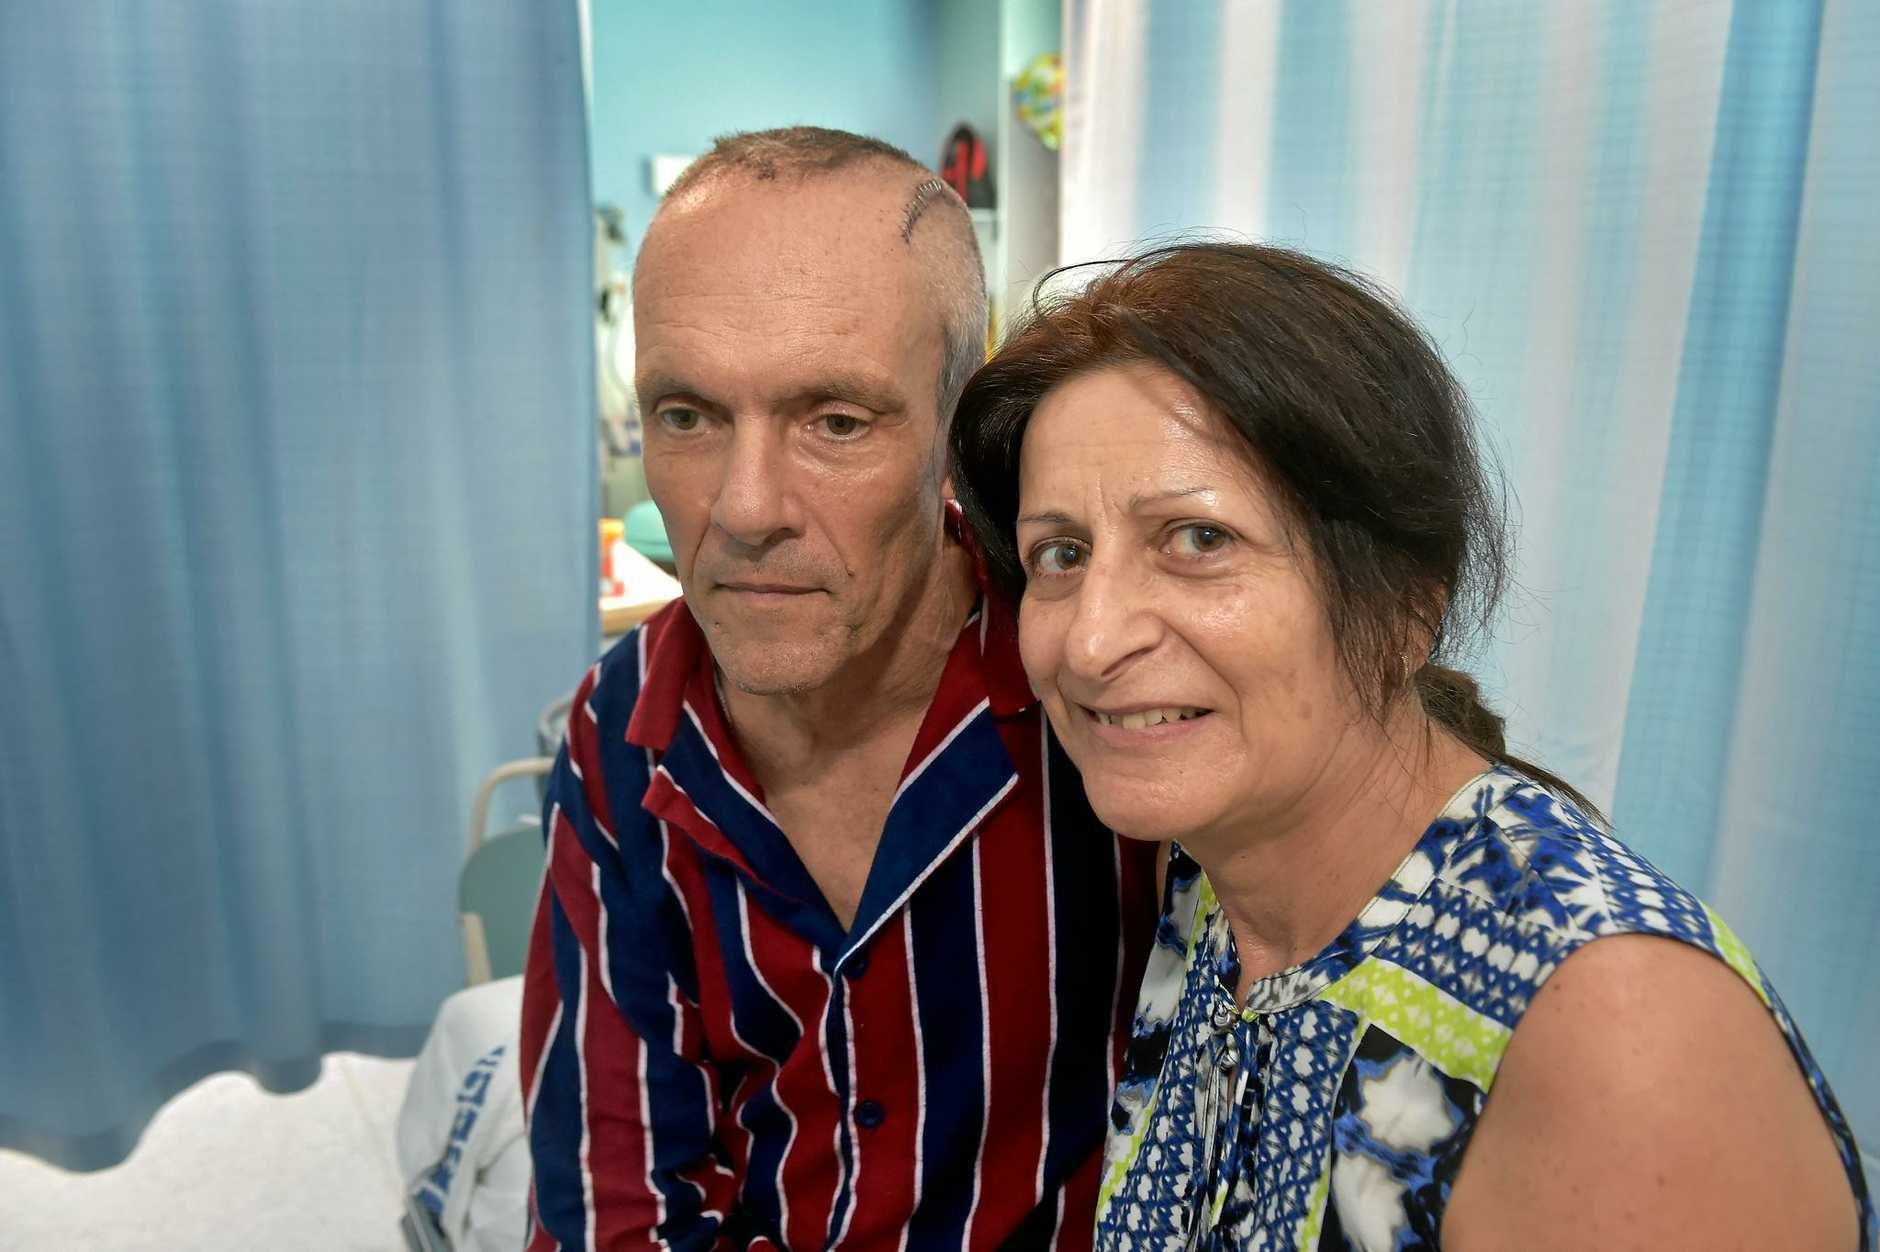 Former Coolum man Steve Nichol is recovering in a Brisbane hospital after a brain operation. Steve is comforted by his wife Angie.